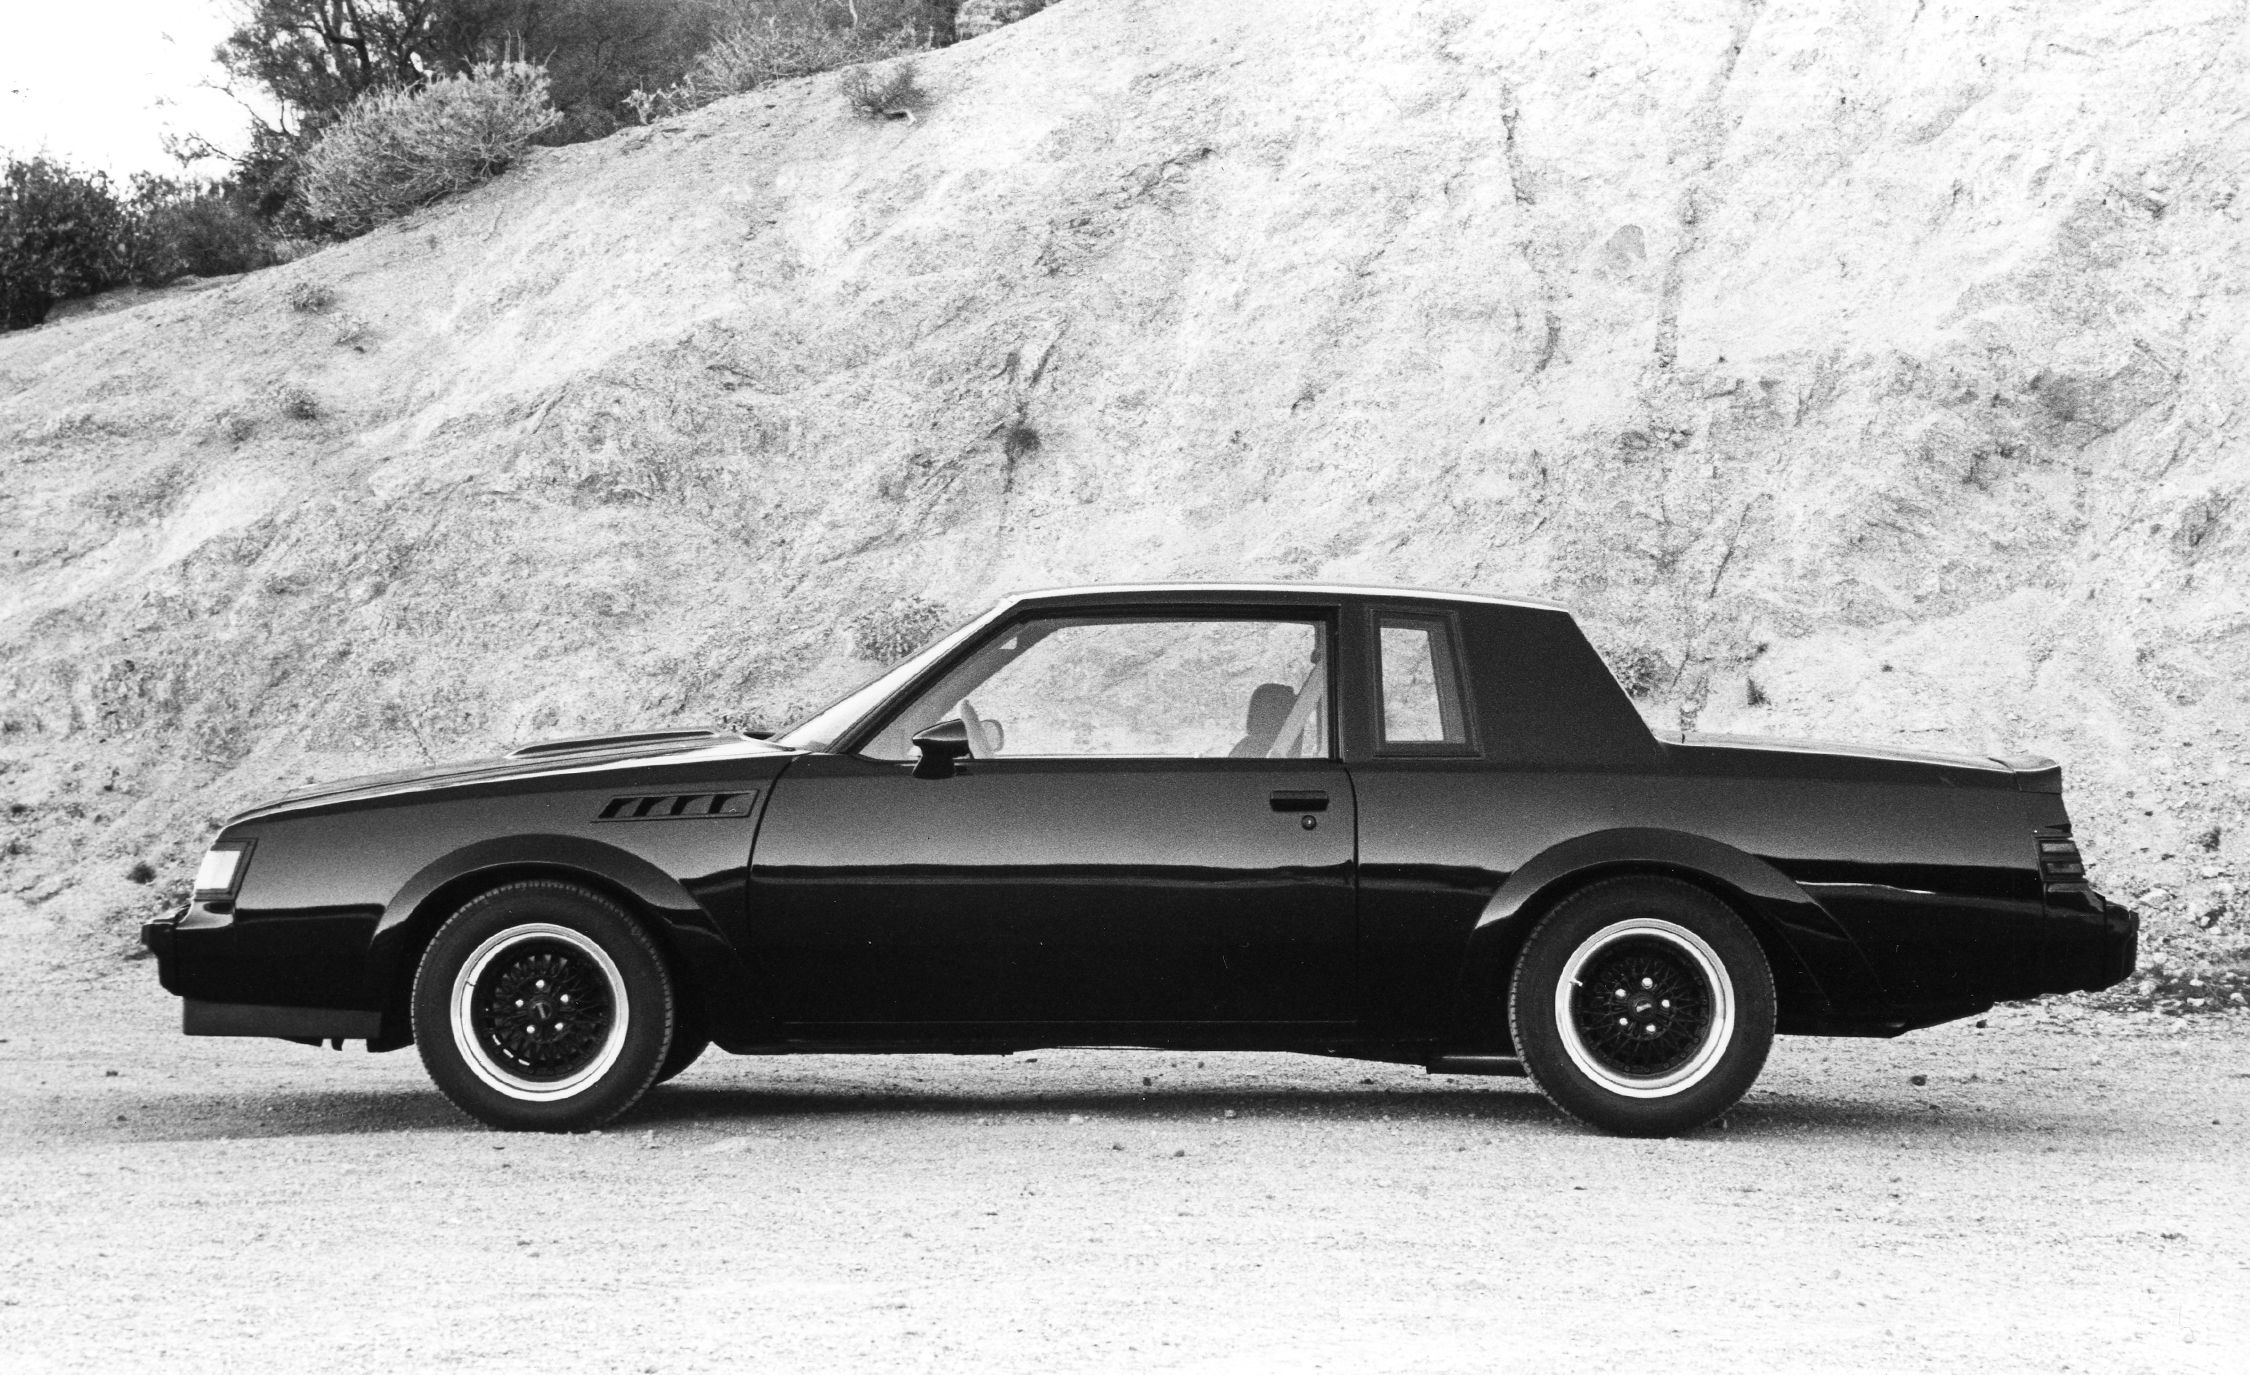 Awesome To The Max C D S Coolest Cars Of The 1980s